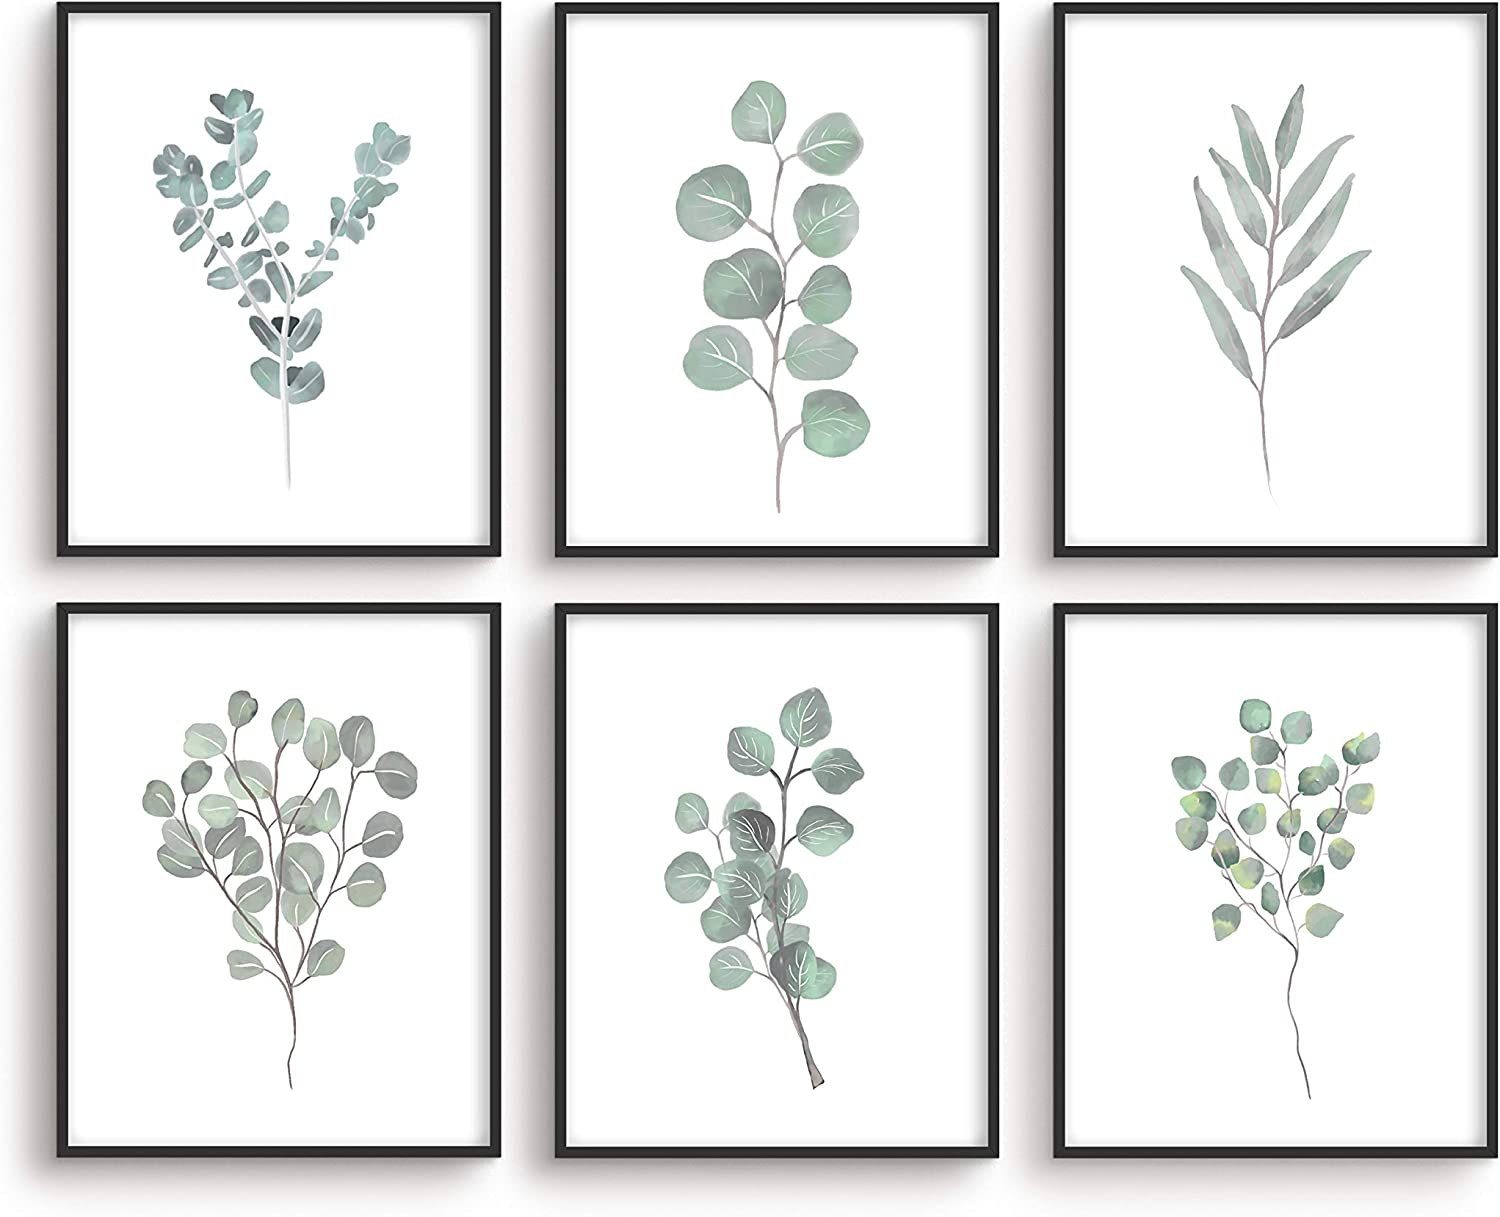 "Leaf Prints Botanical Wall Decor - By Haus&Hues | Set of 6 Botanical Art Prints & Eucalyptus Leaves Wall Decor | Botanical Prints Wall Art Eucalyptus Wall Decor Plant Decor | Unframed, 8"" x 10"""